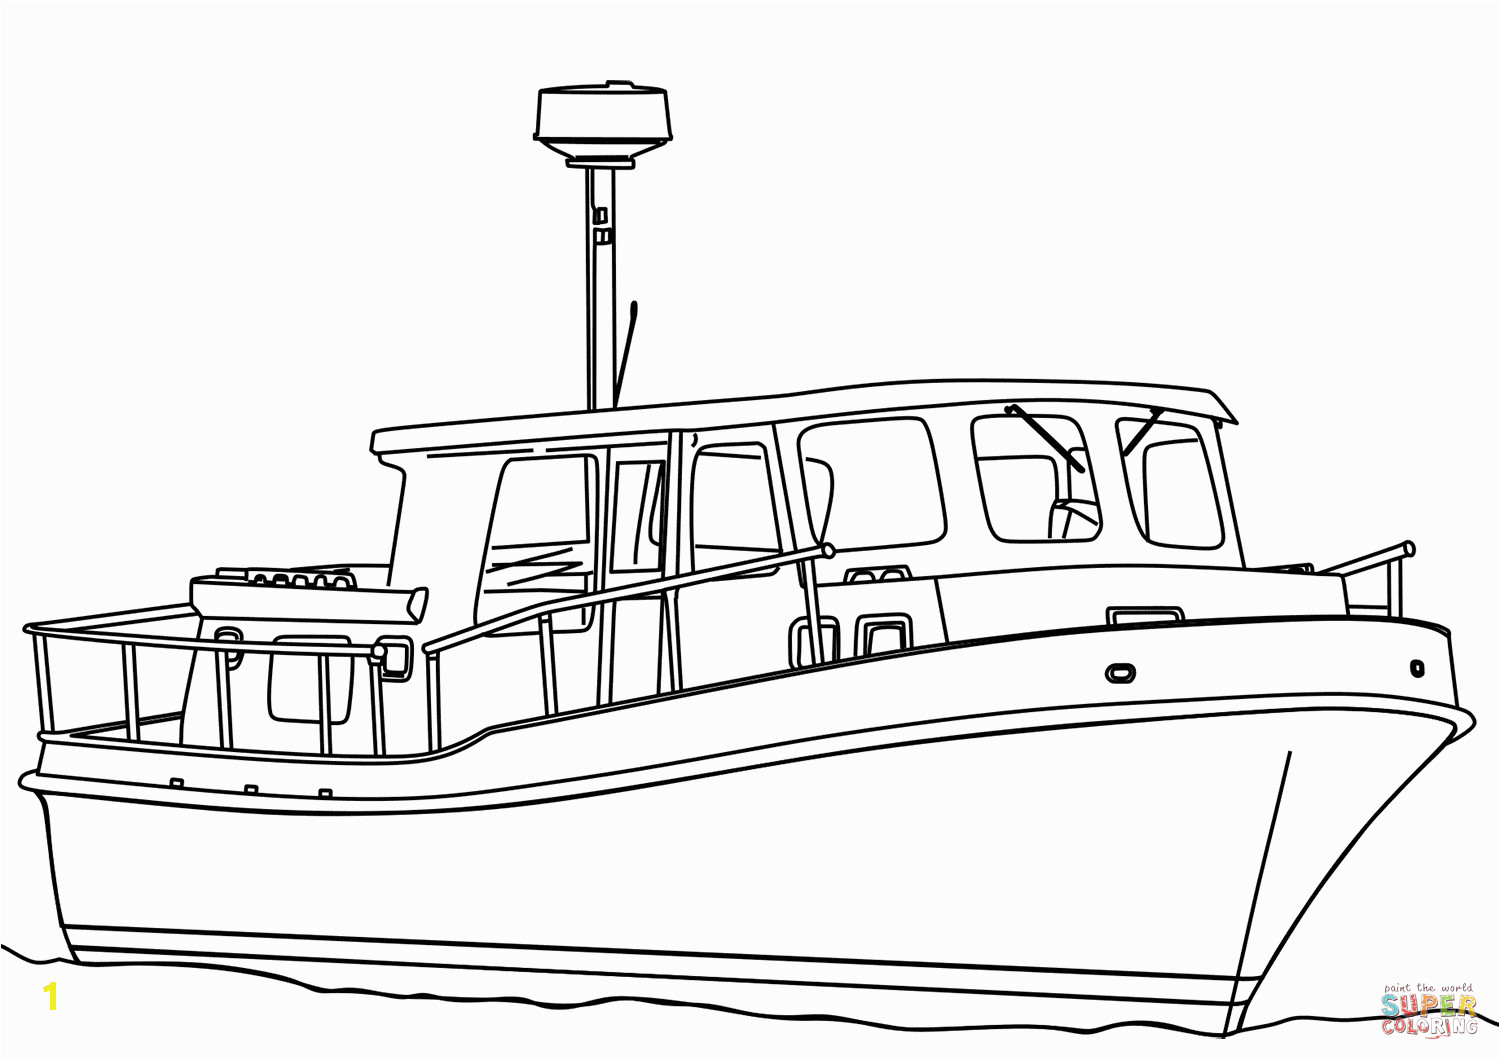 remarkable tugboat coloring page trawler boat free printable pages